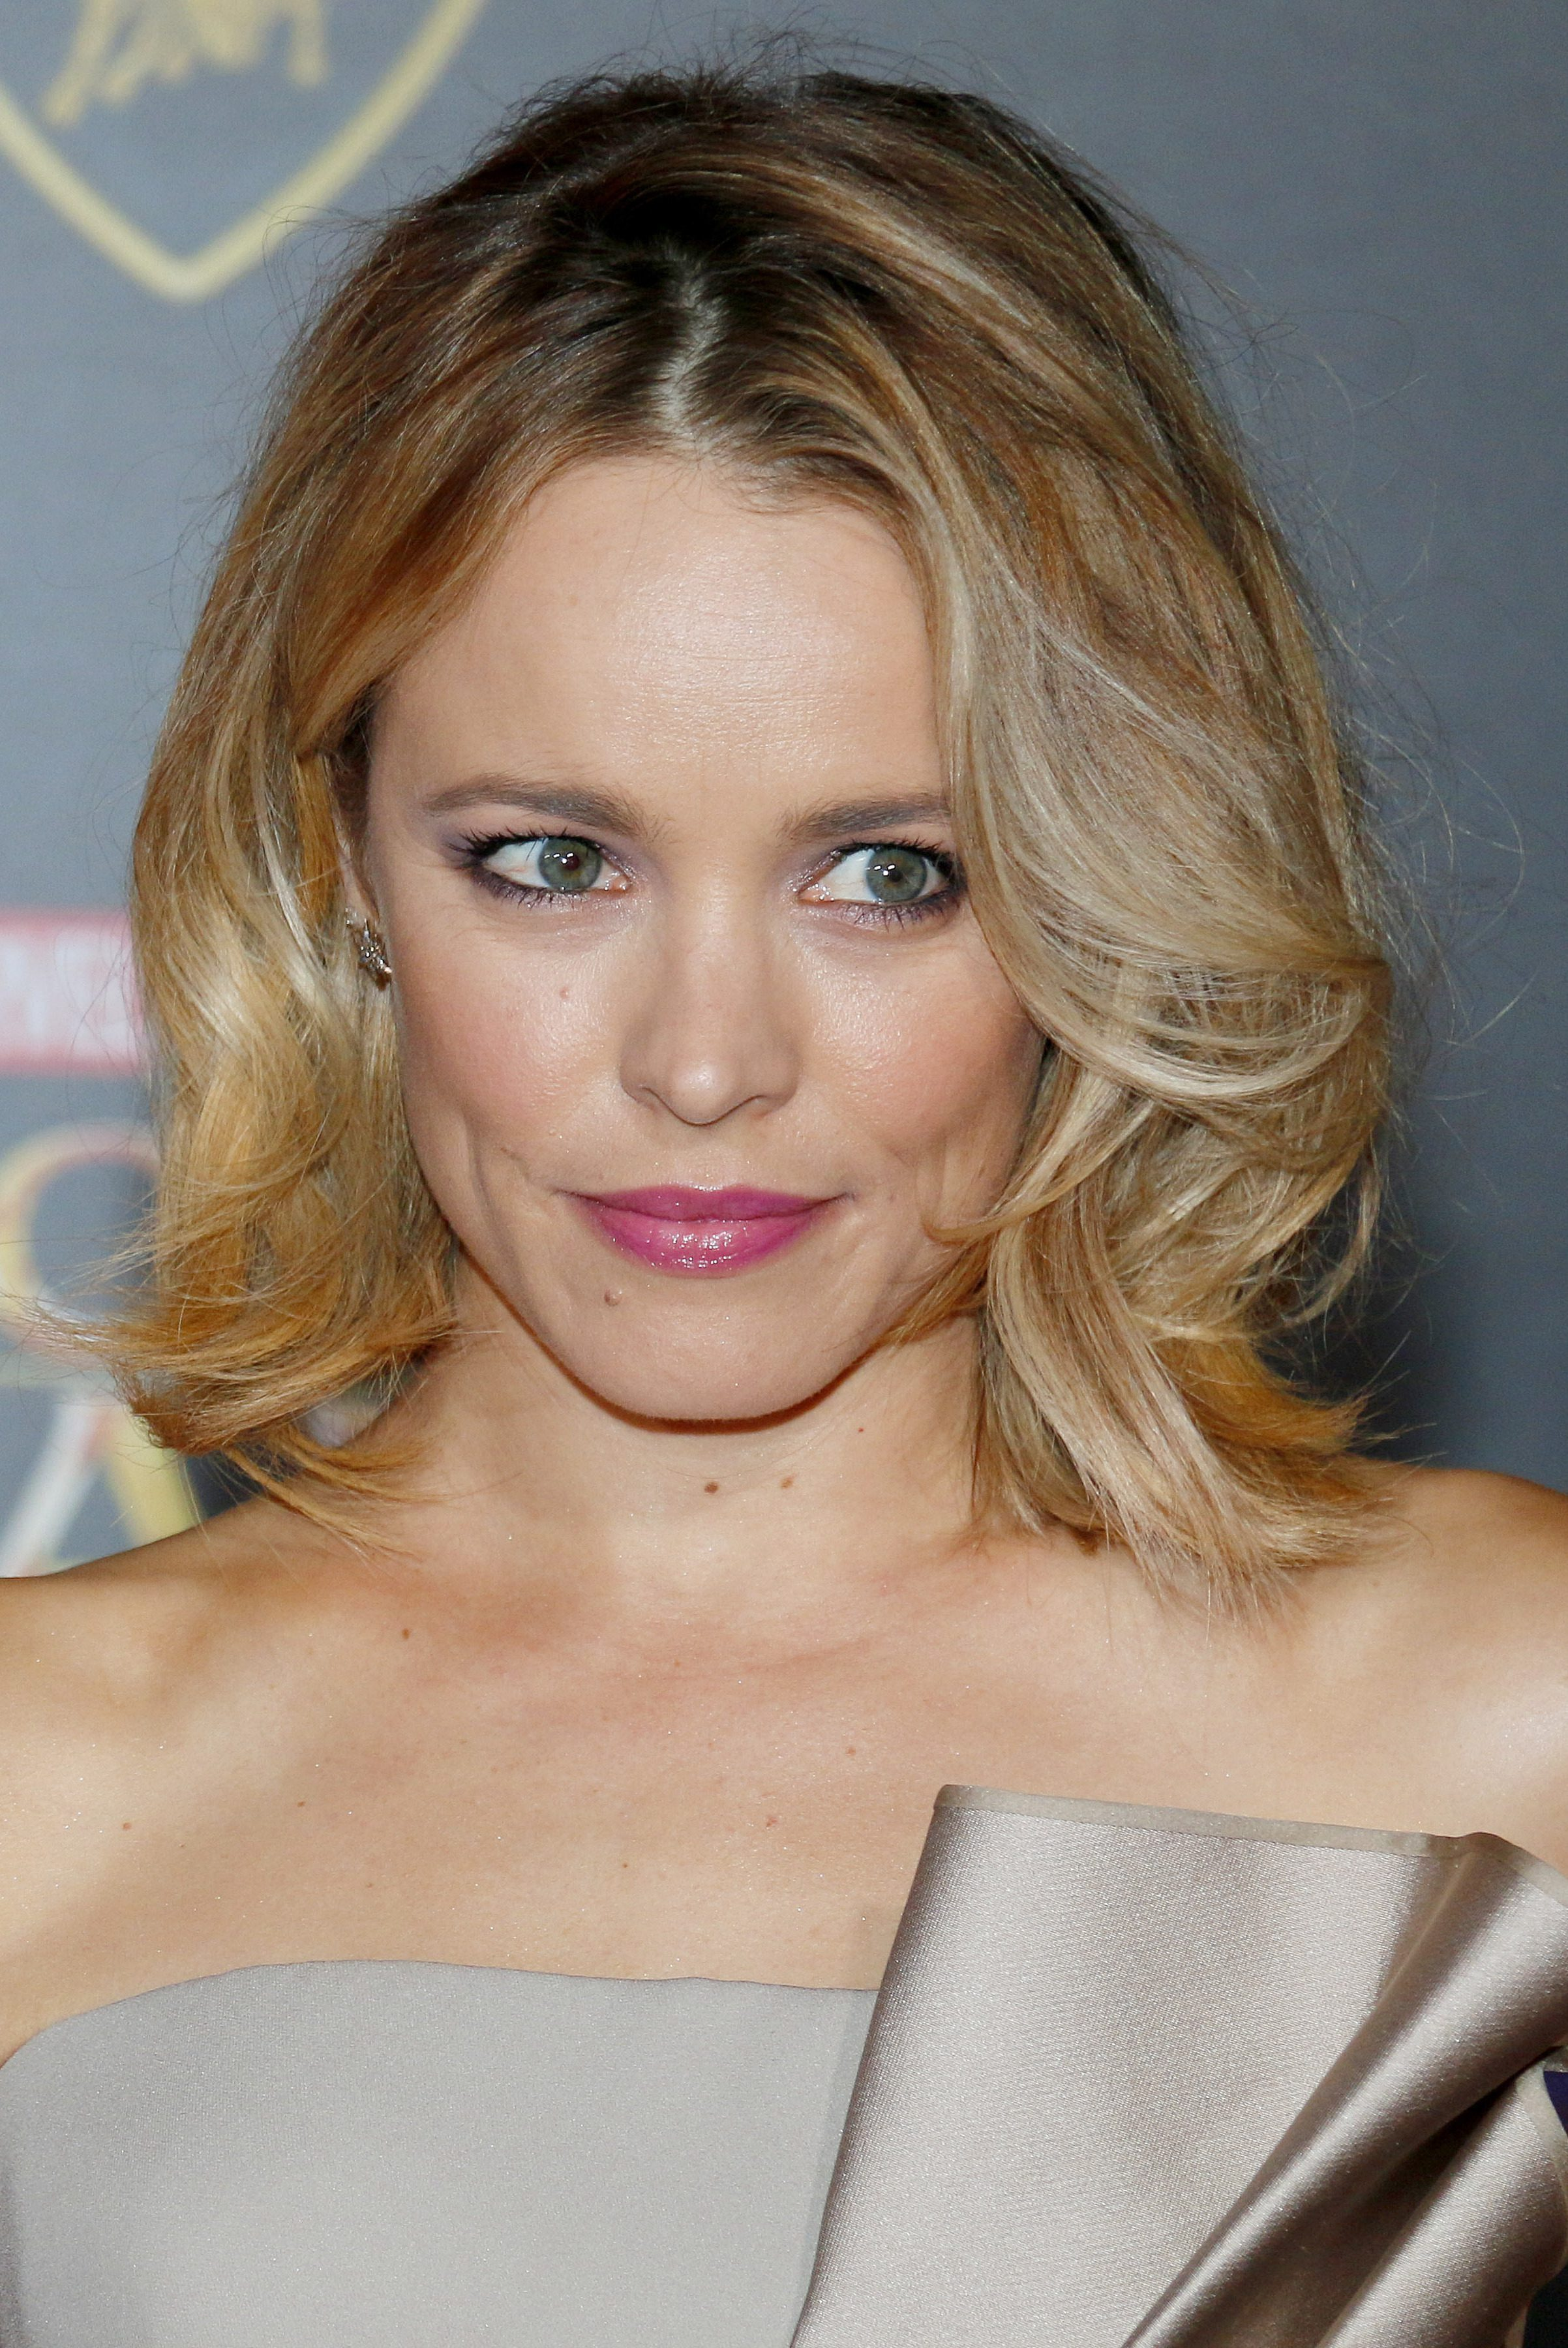 Rachel McAdams with that Mid Parted Curled Short Bob